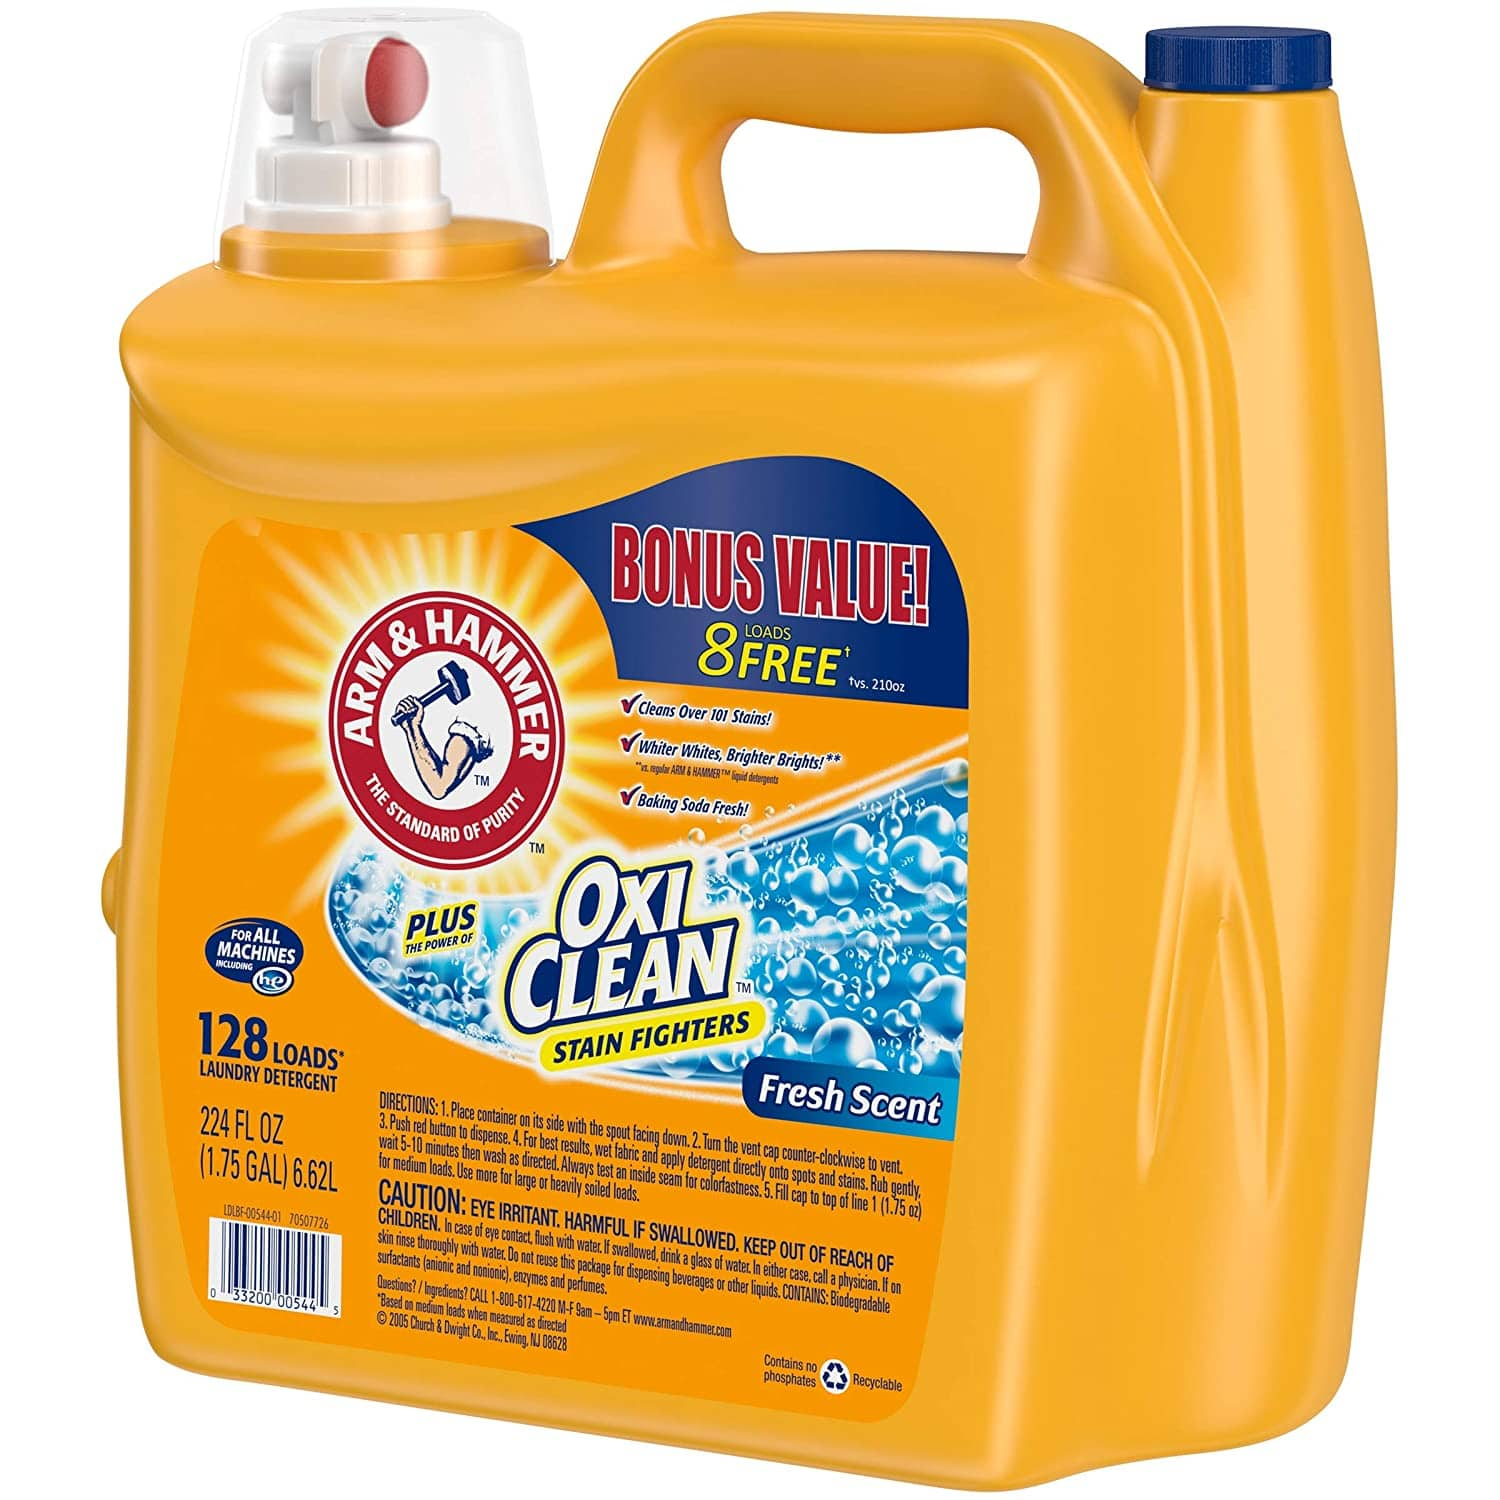 224-Oz Arm & Hammer Laundry Detergent Plus Oxiclean 3 for $25.91 ($8.64 each) + Free Shipping